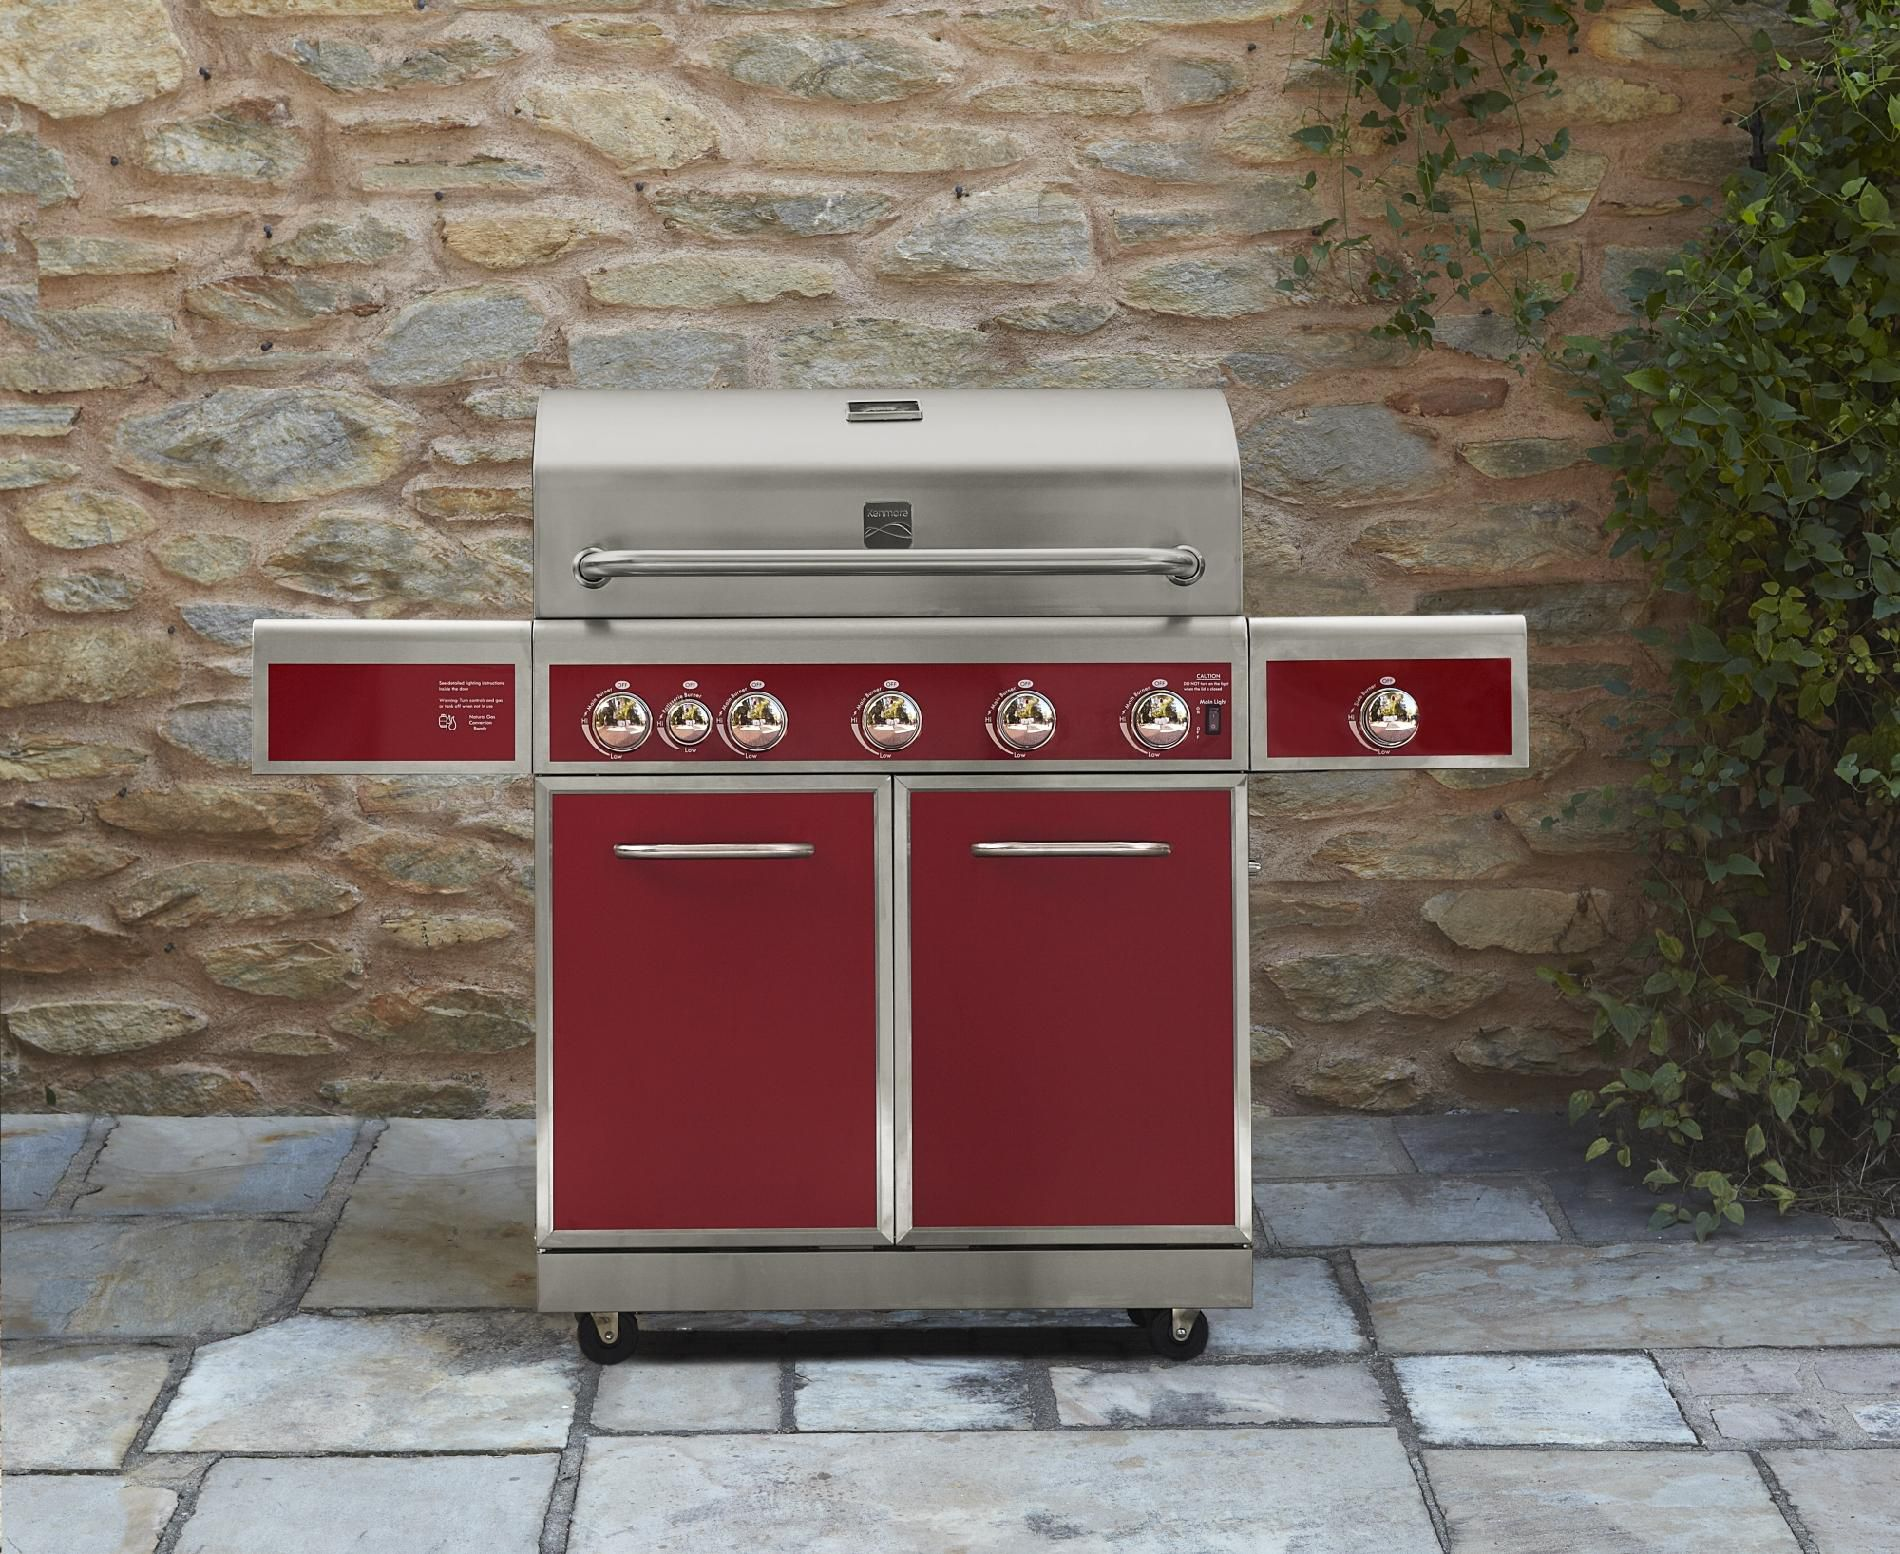 Kenmore 5-Burner Gas Grill with Ceramic Searing and Rotisserie Burners - Red Metallic